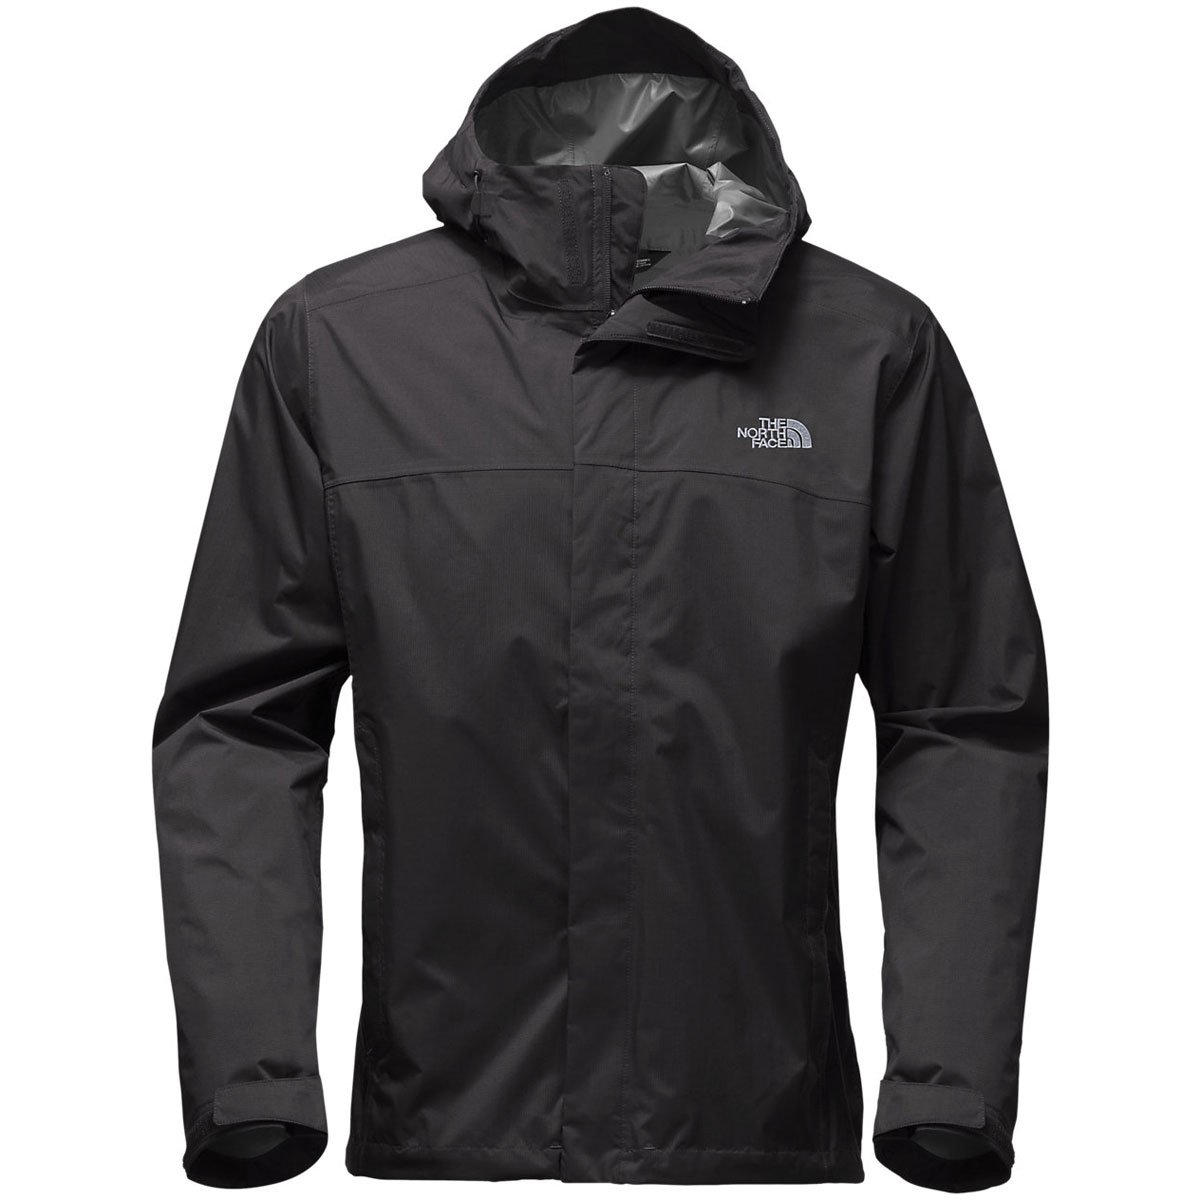 The North Face Men's Venture 2 Jacket - Tall Black (X-Large) by The North Face (Image #1)